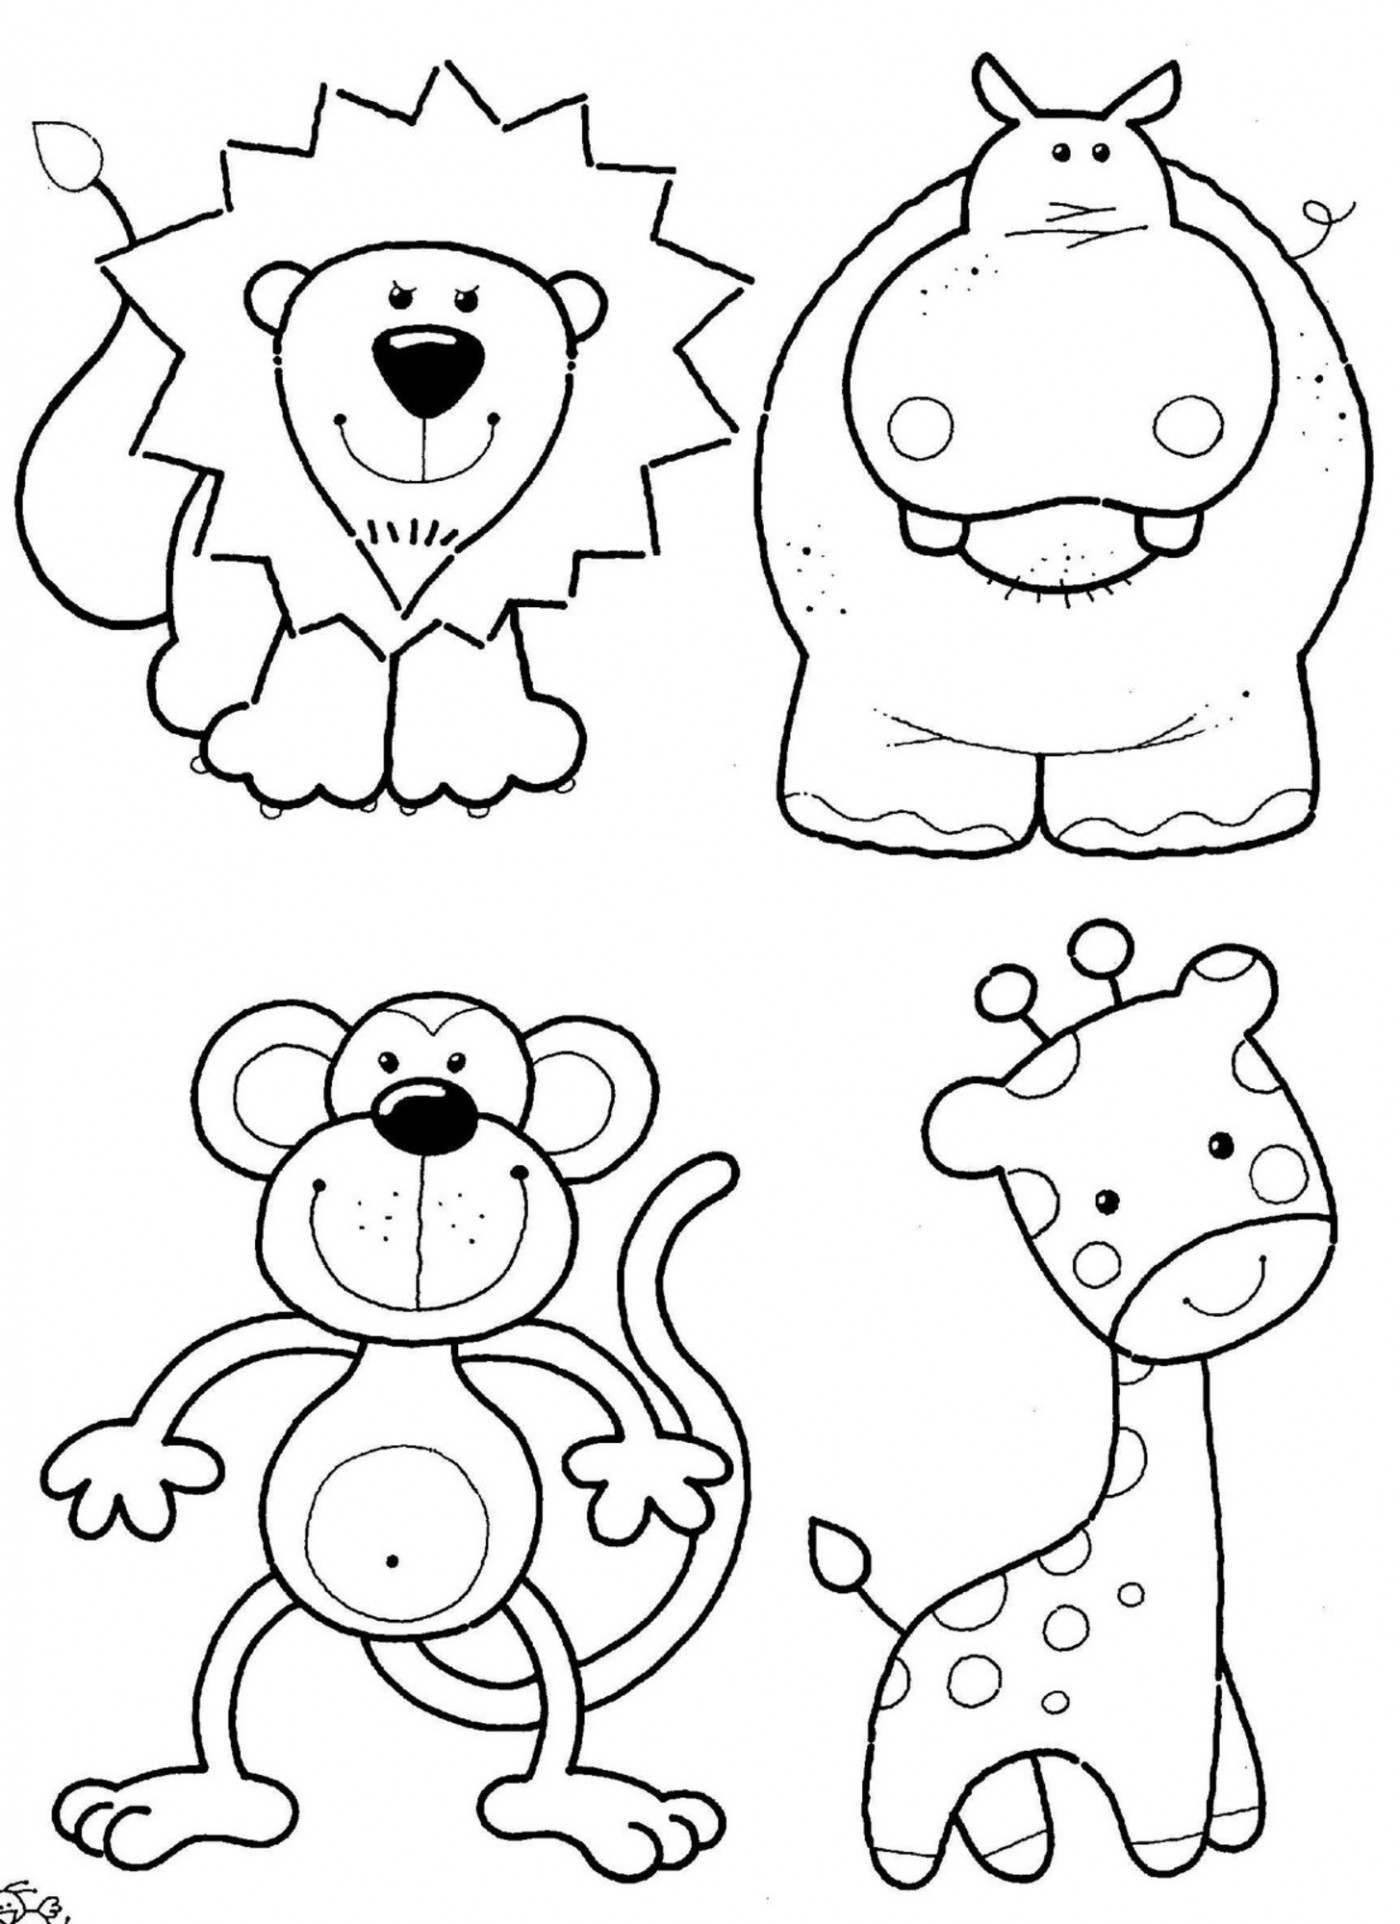 Animal Coloring Pages (14) - Coloring Kids